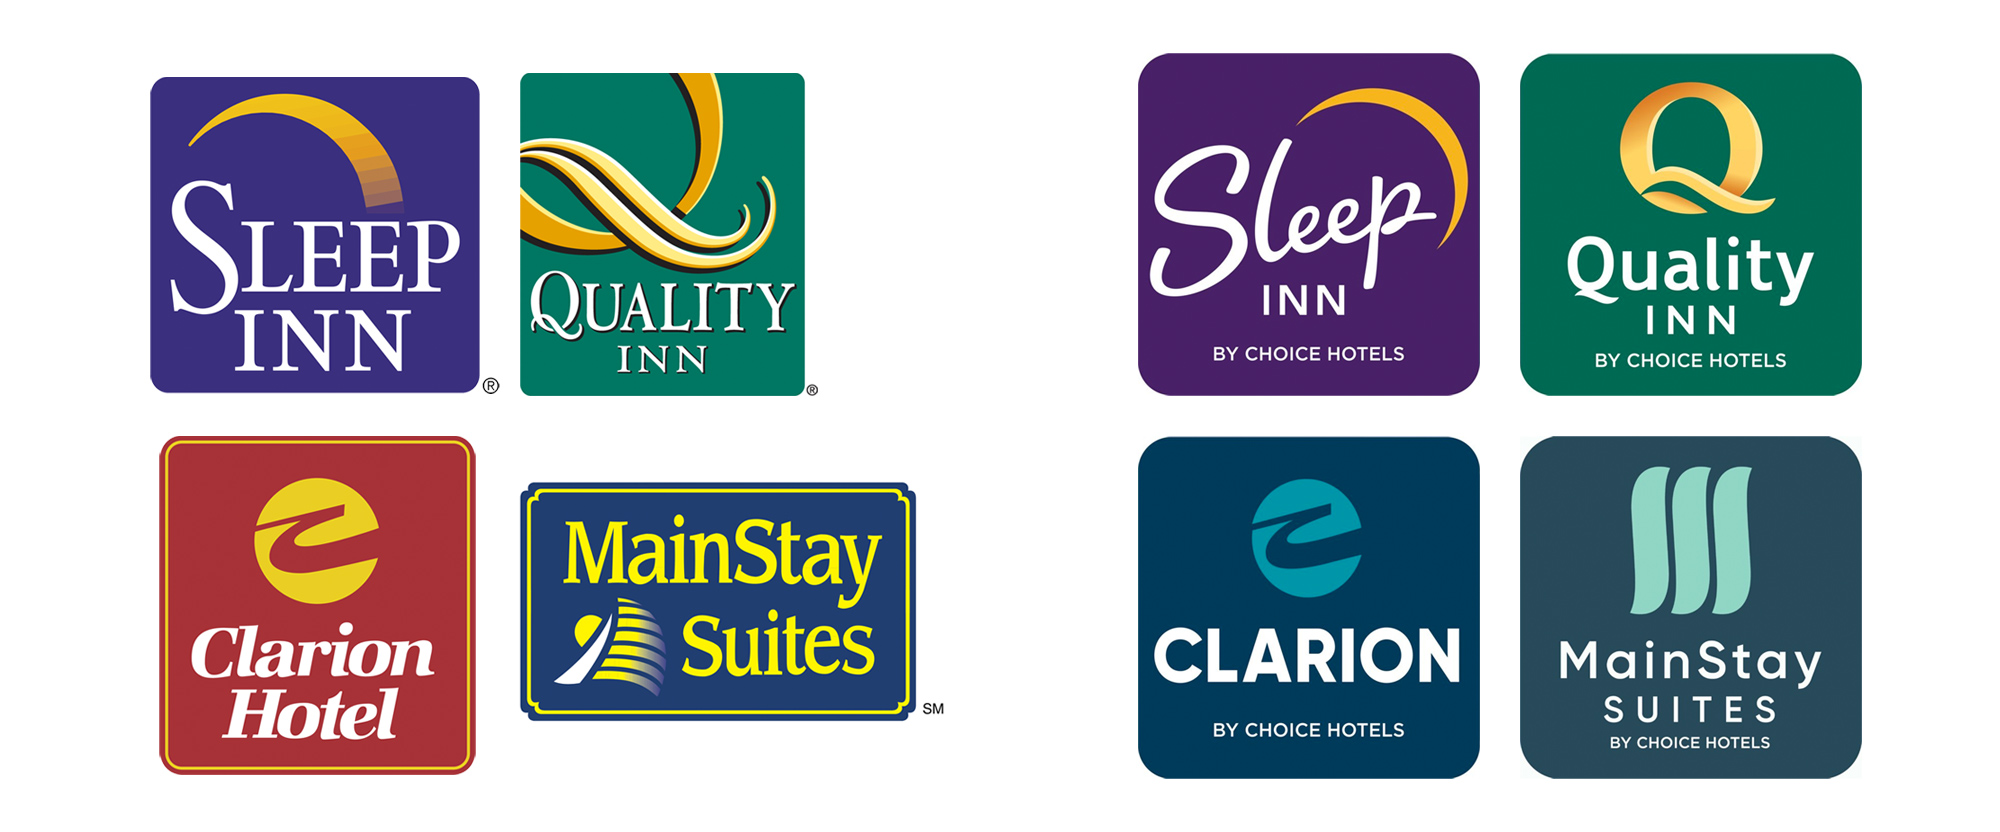 New Logos for Choice Hotels Midscale Brands